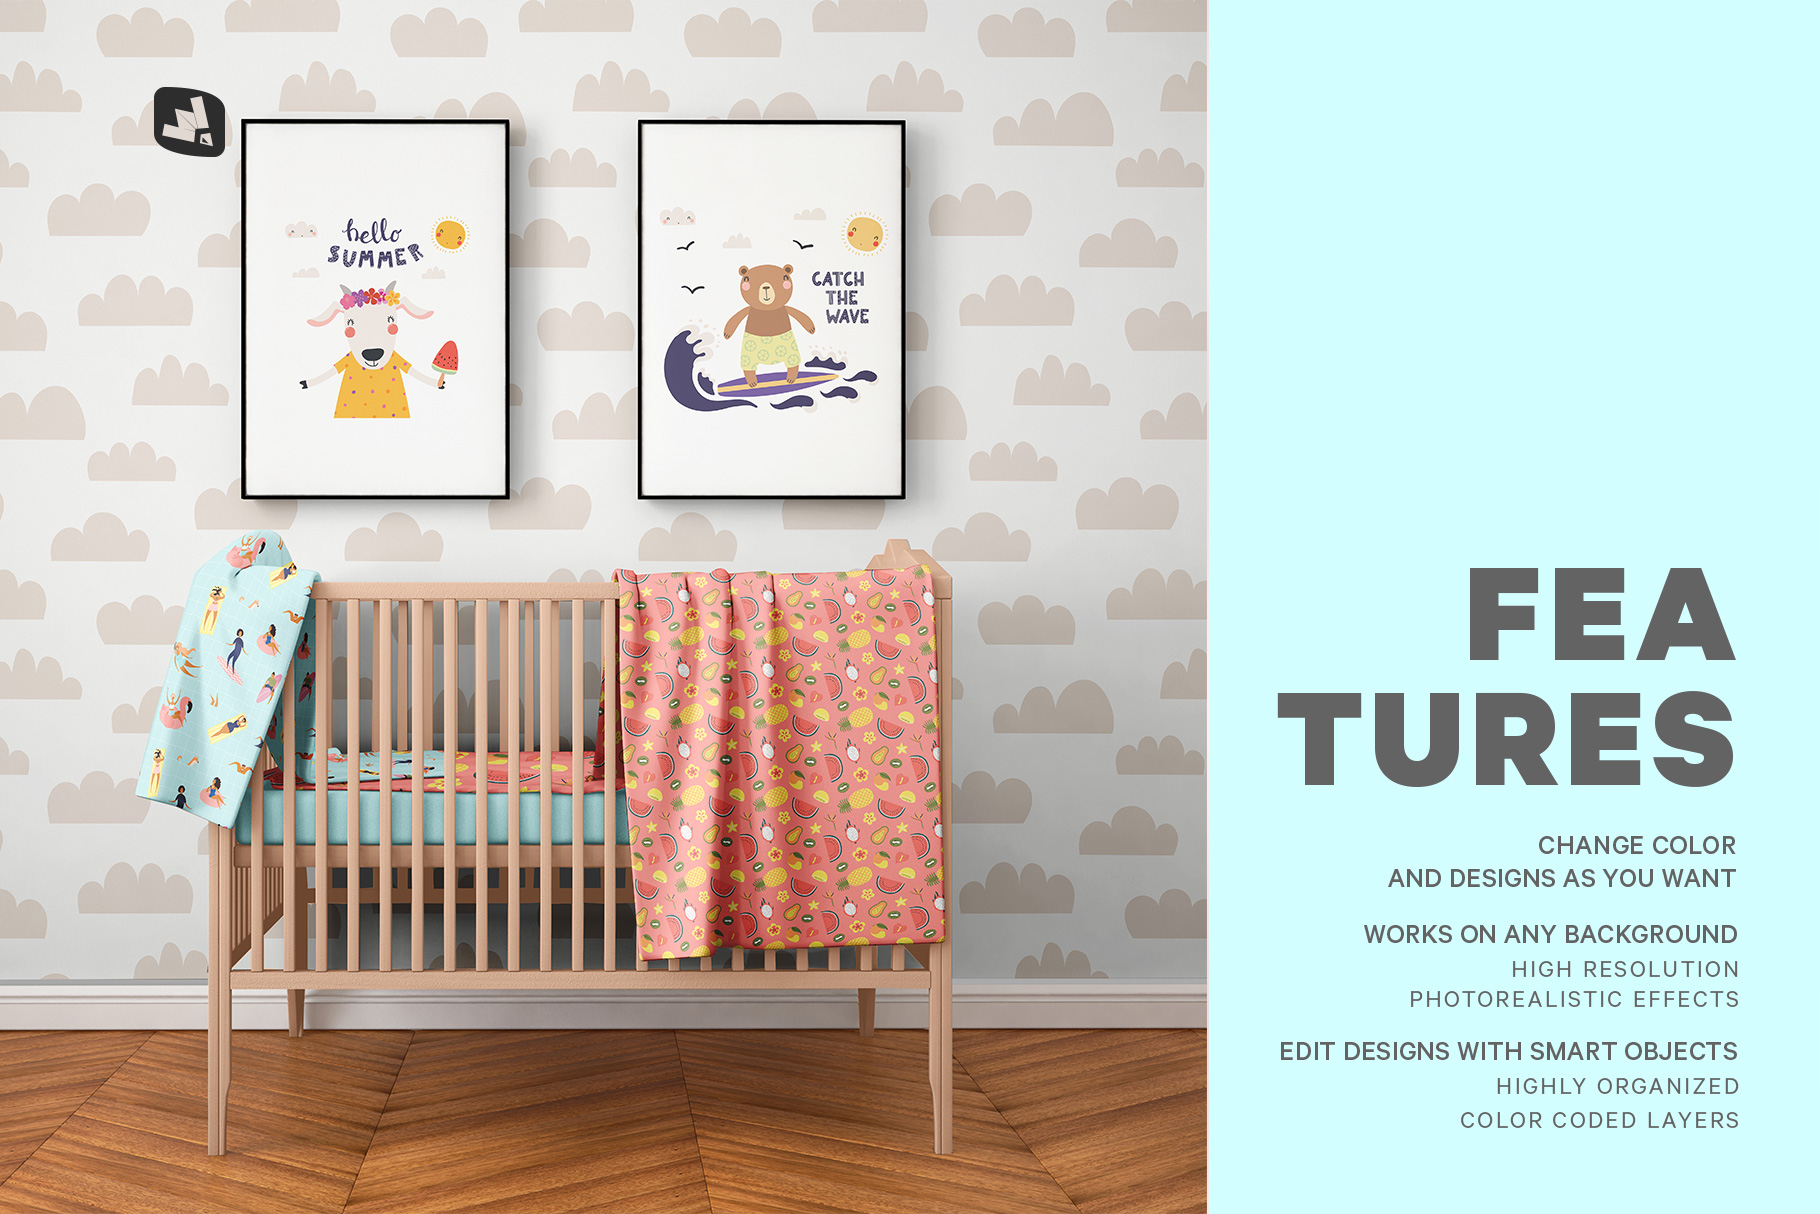 features of the nursery interior mockup